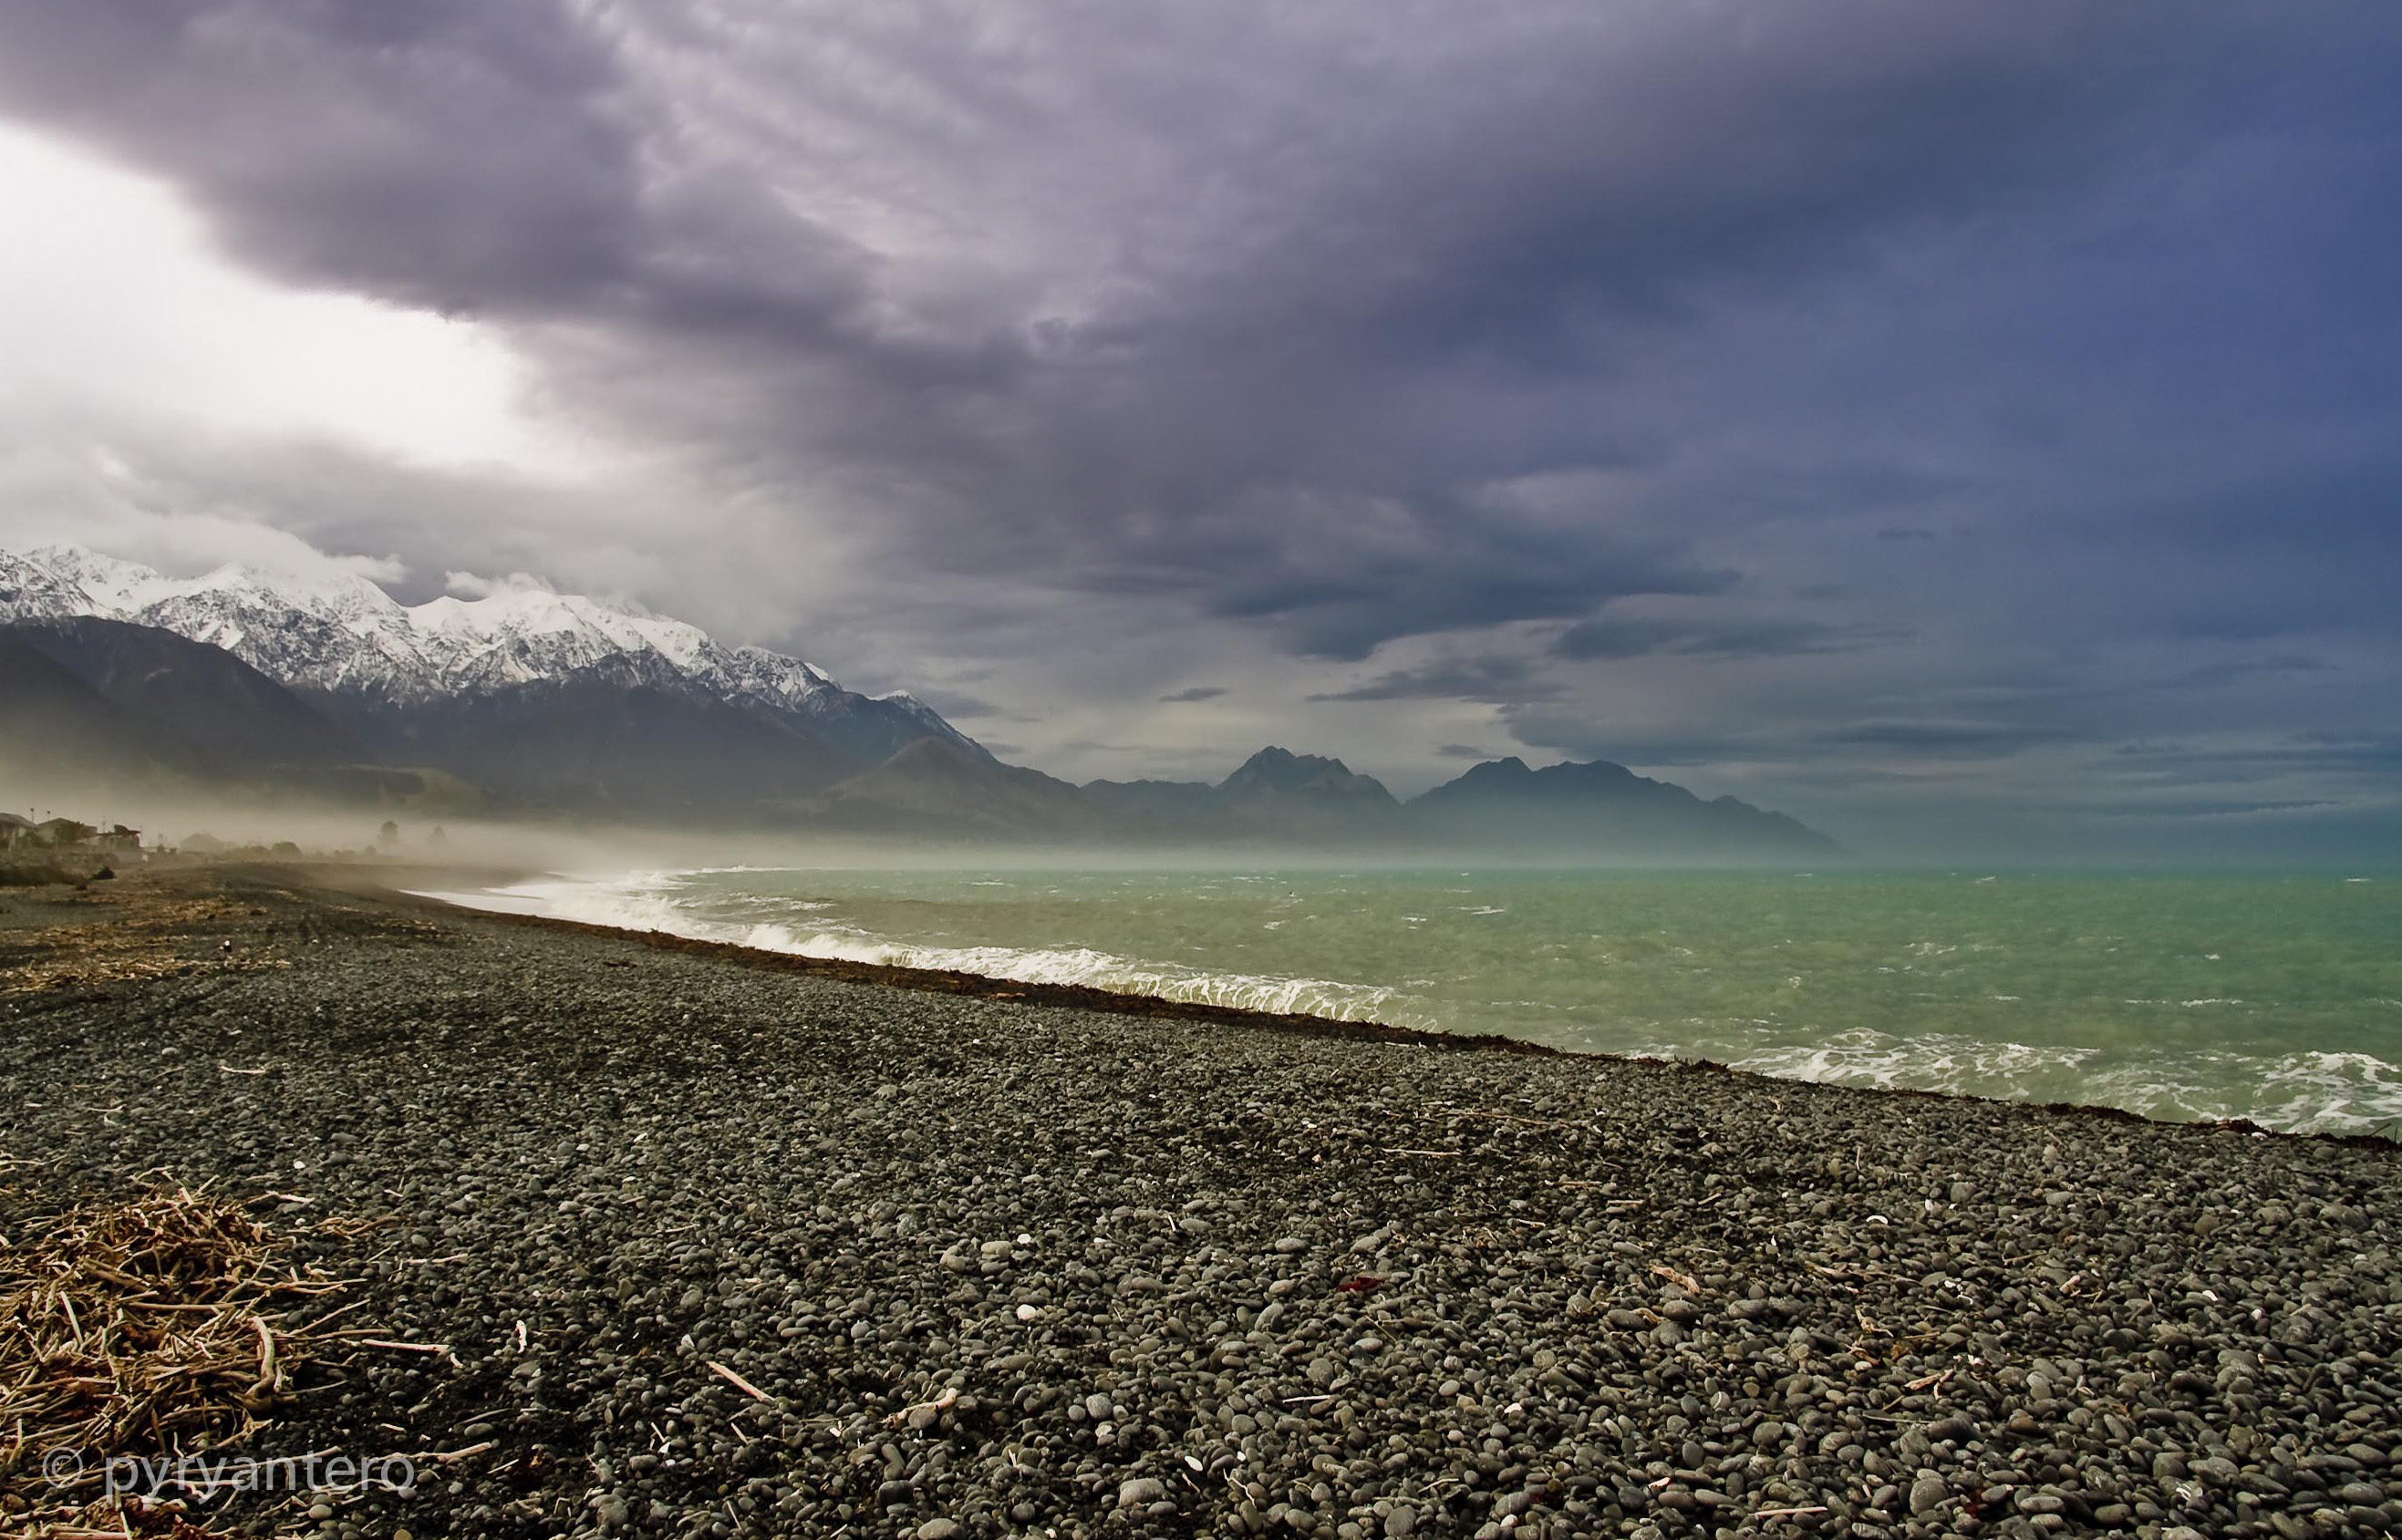 Old beach, Kaikoura, South Island, New Zealand. Pyry Antero Pietiläinen Photography, pyryantero